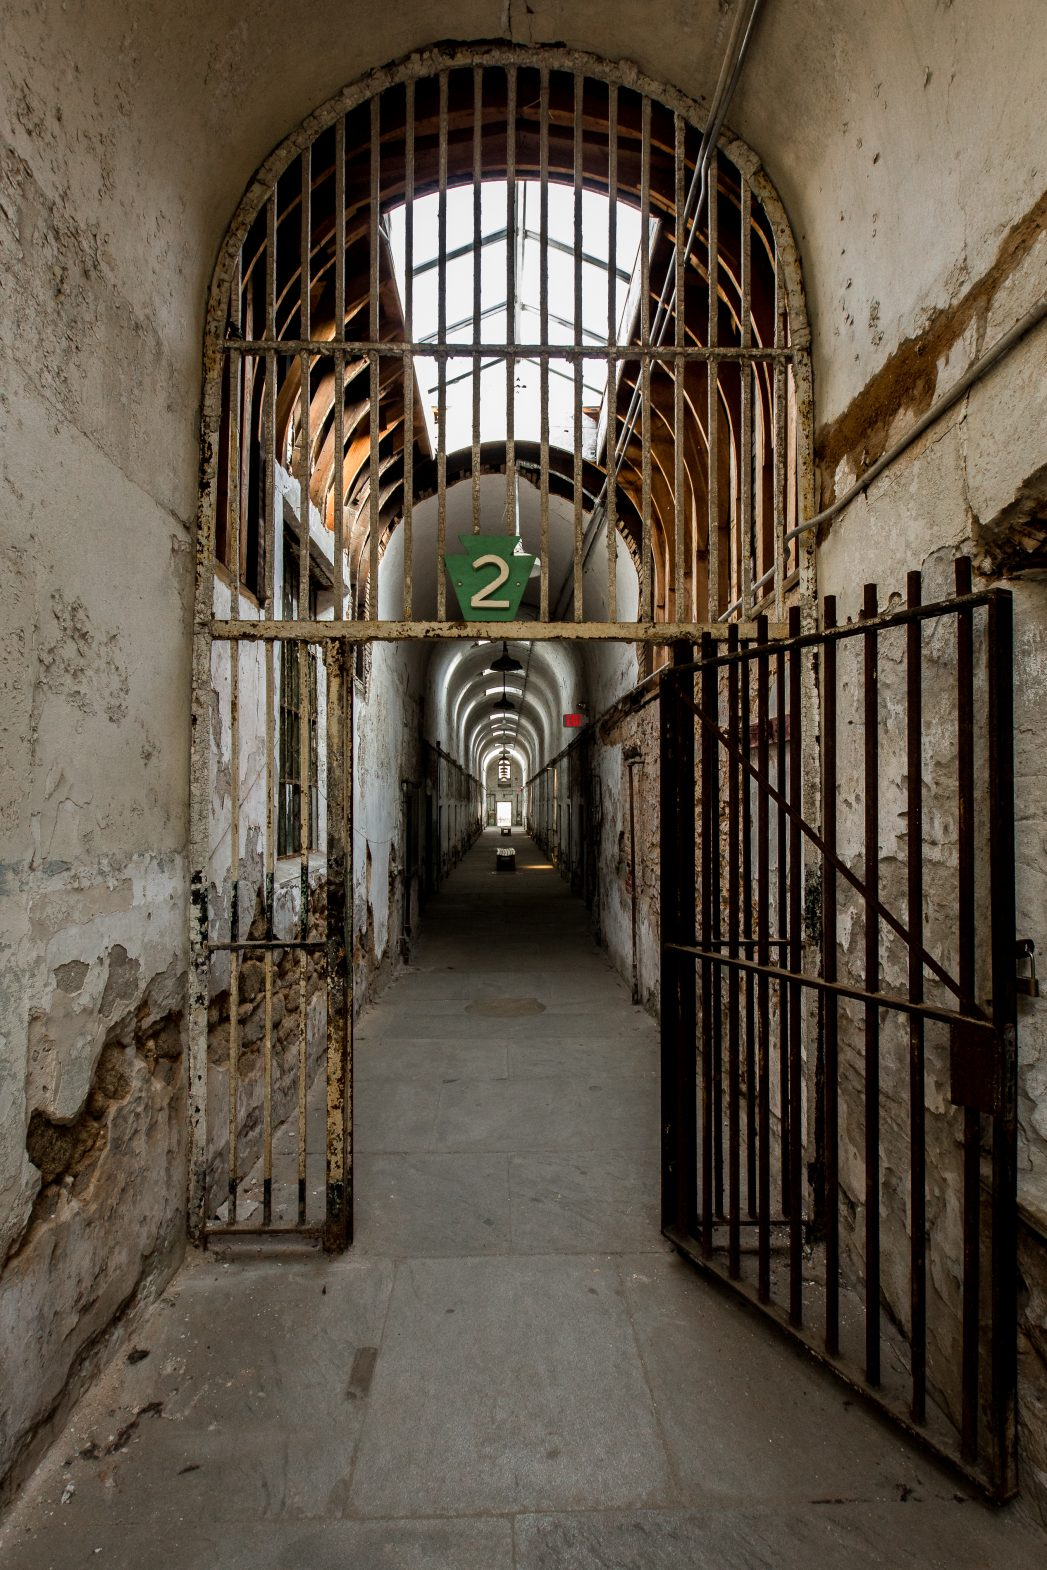 Cell block 2 at Eastern State Penitentiary where women were housed for nearly 100 years.